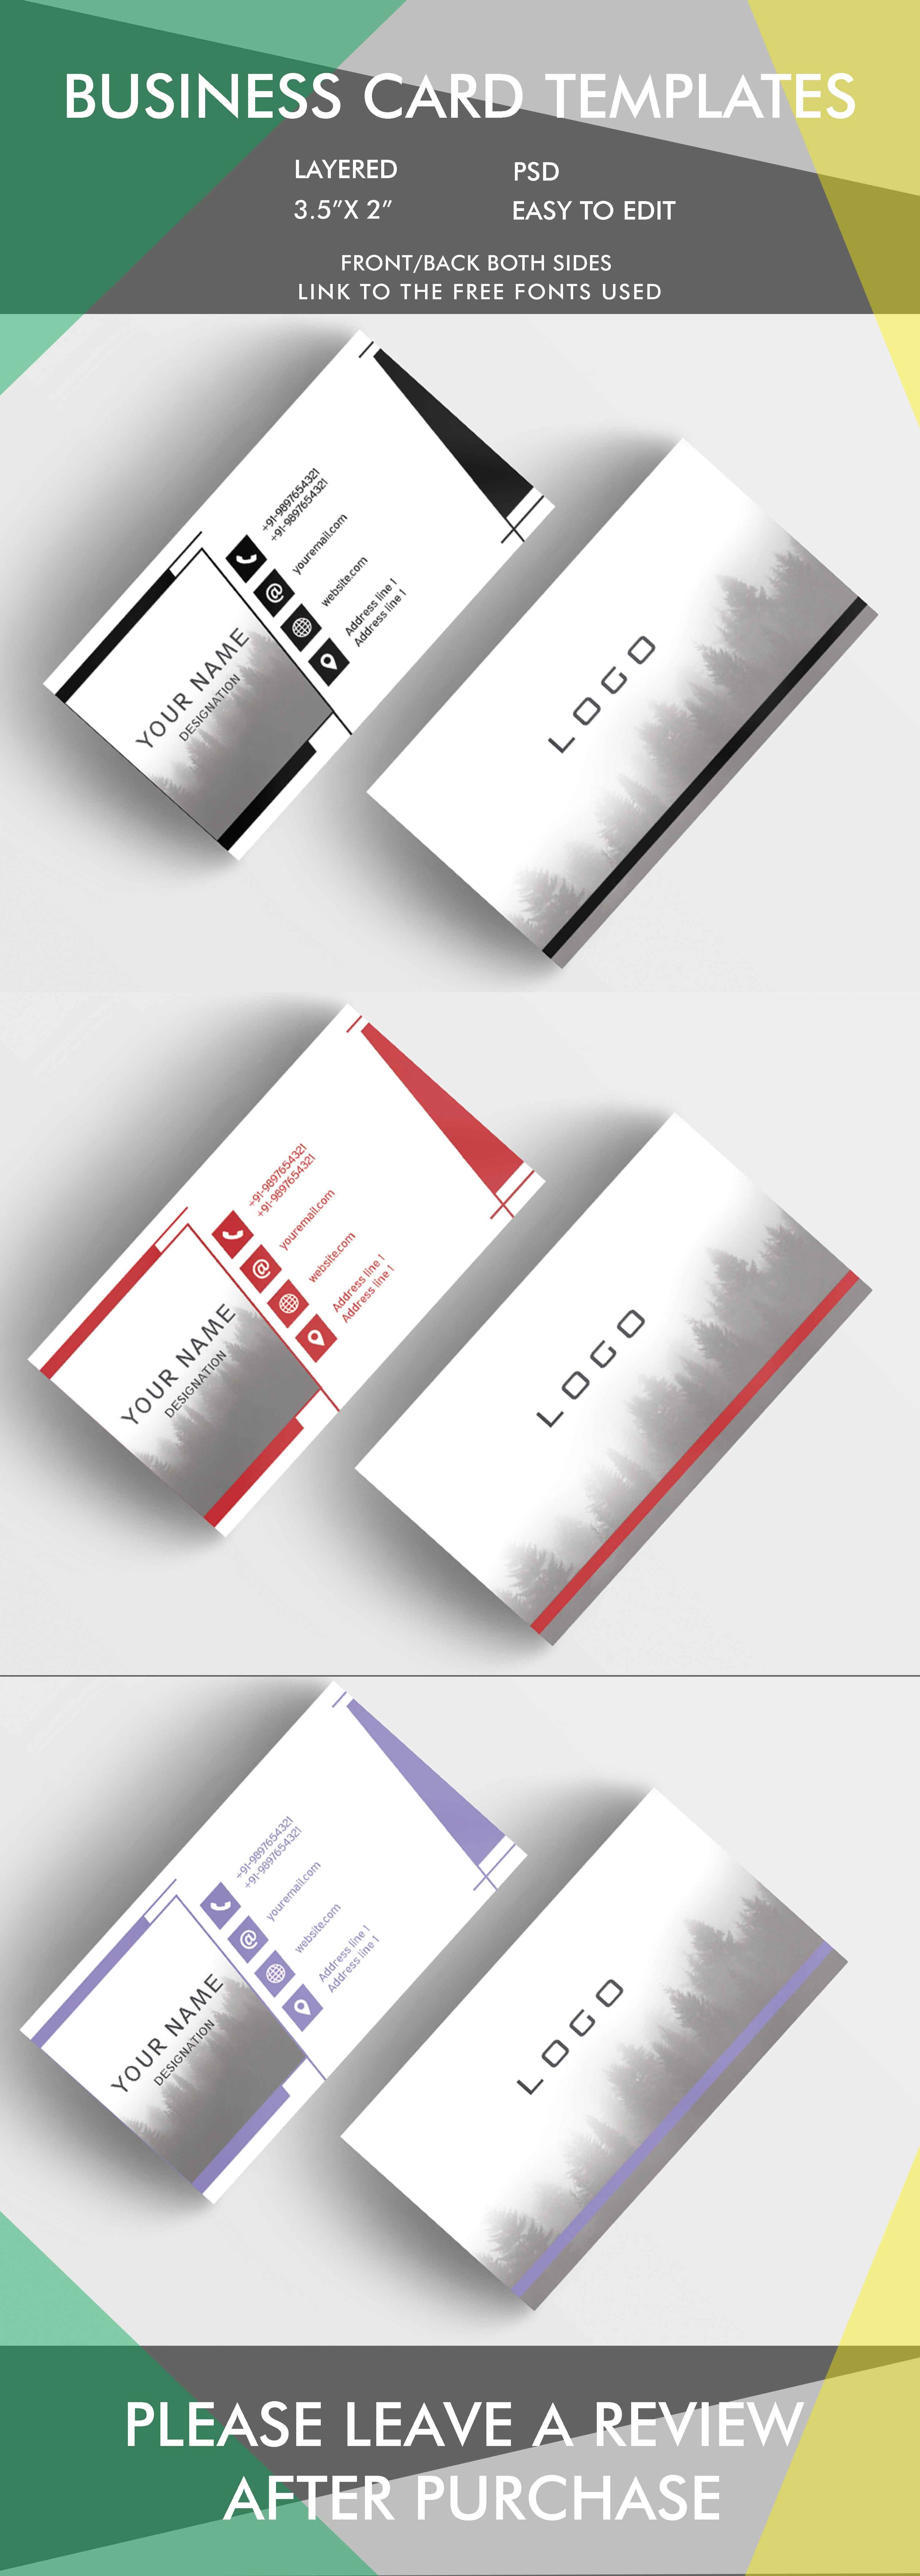 3 In 1 Business Card Template For 10 Only Businescards Templates Cool Business Cards Business Card Maker Business Card Inspiration